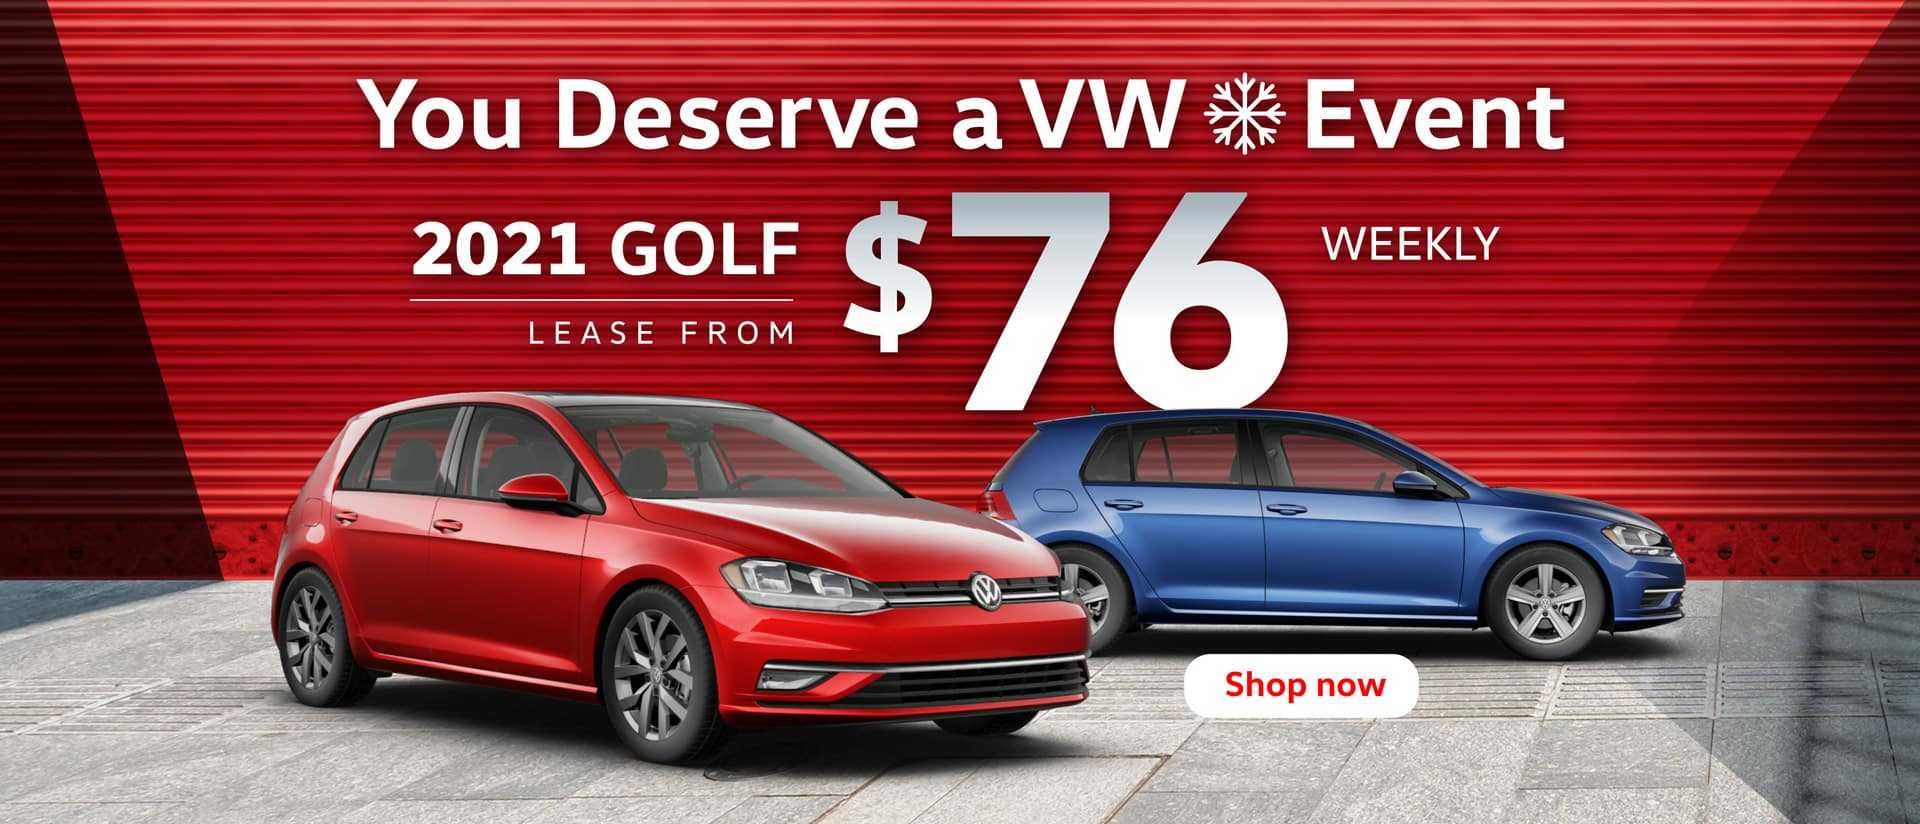 1494175_VW_YouDeserve_2021Golf_WB_NVW